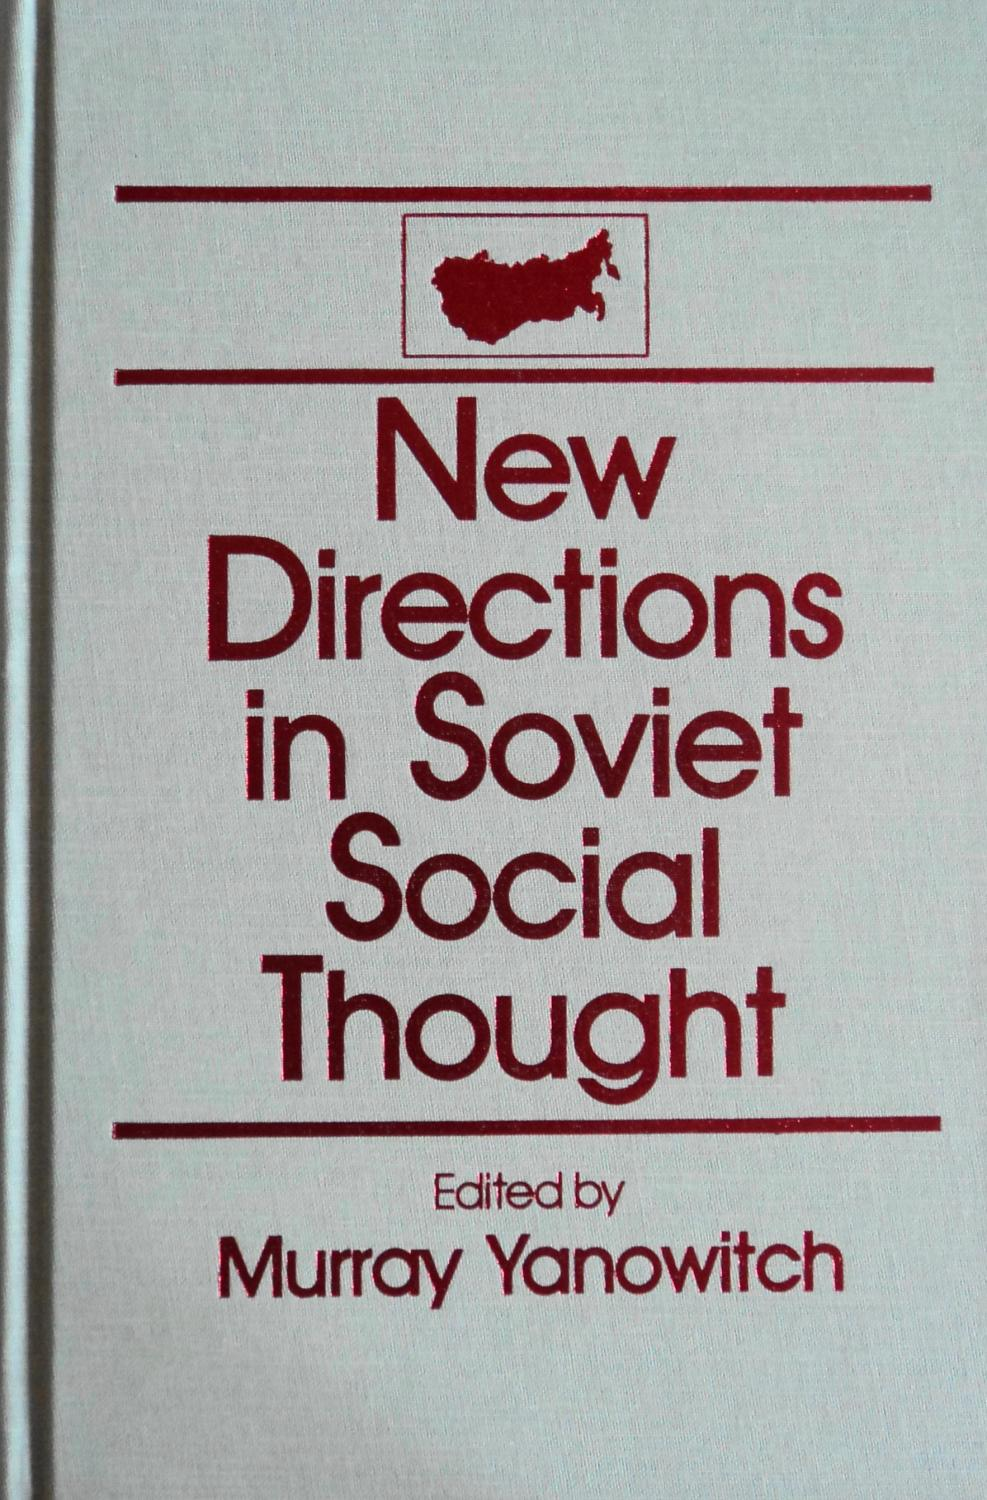 New Directions in Soviet Social Thought: An Anthology (The USSR in Transition - Yanowitch, Murray